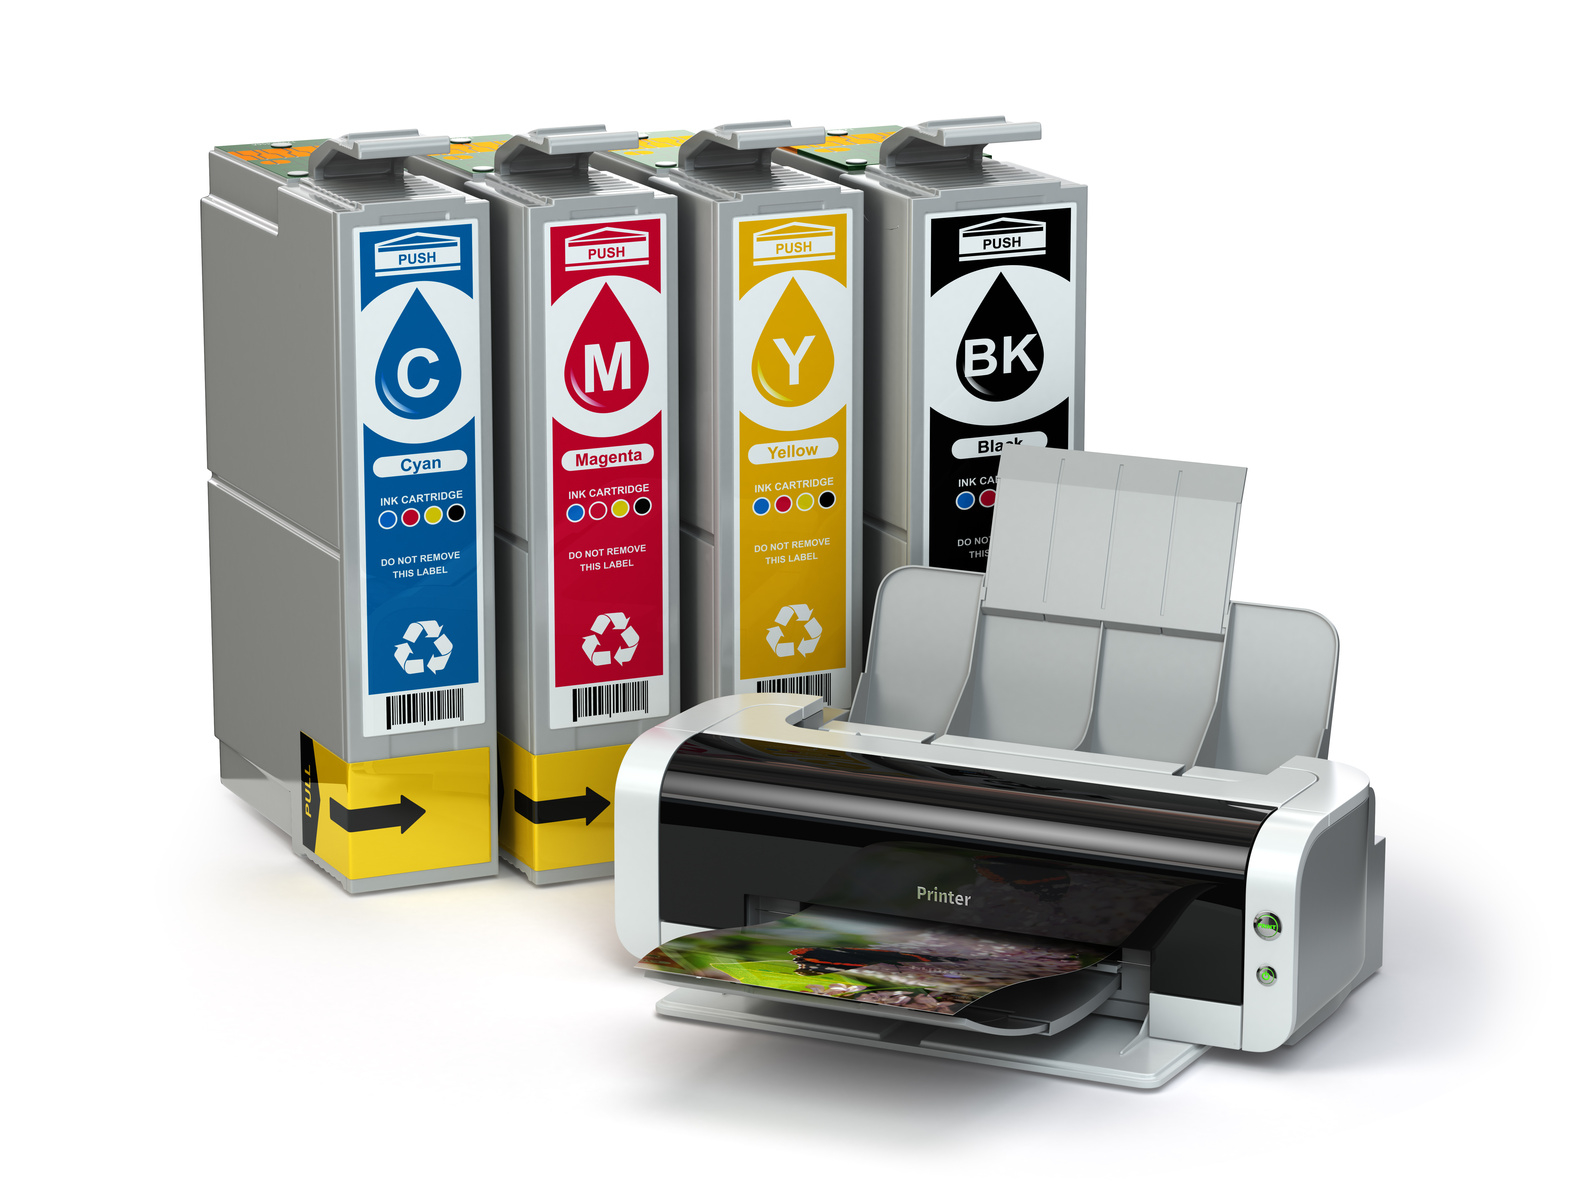 Techno Recharge à Saint-Jérôme: Save with our eco-friendly refill service for your ink cartridges.